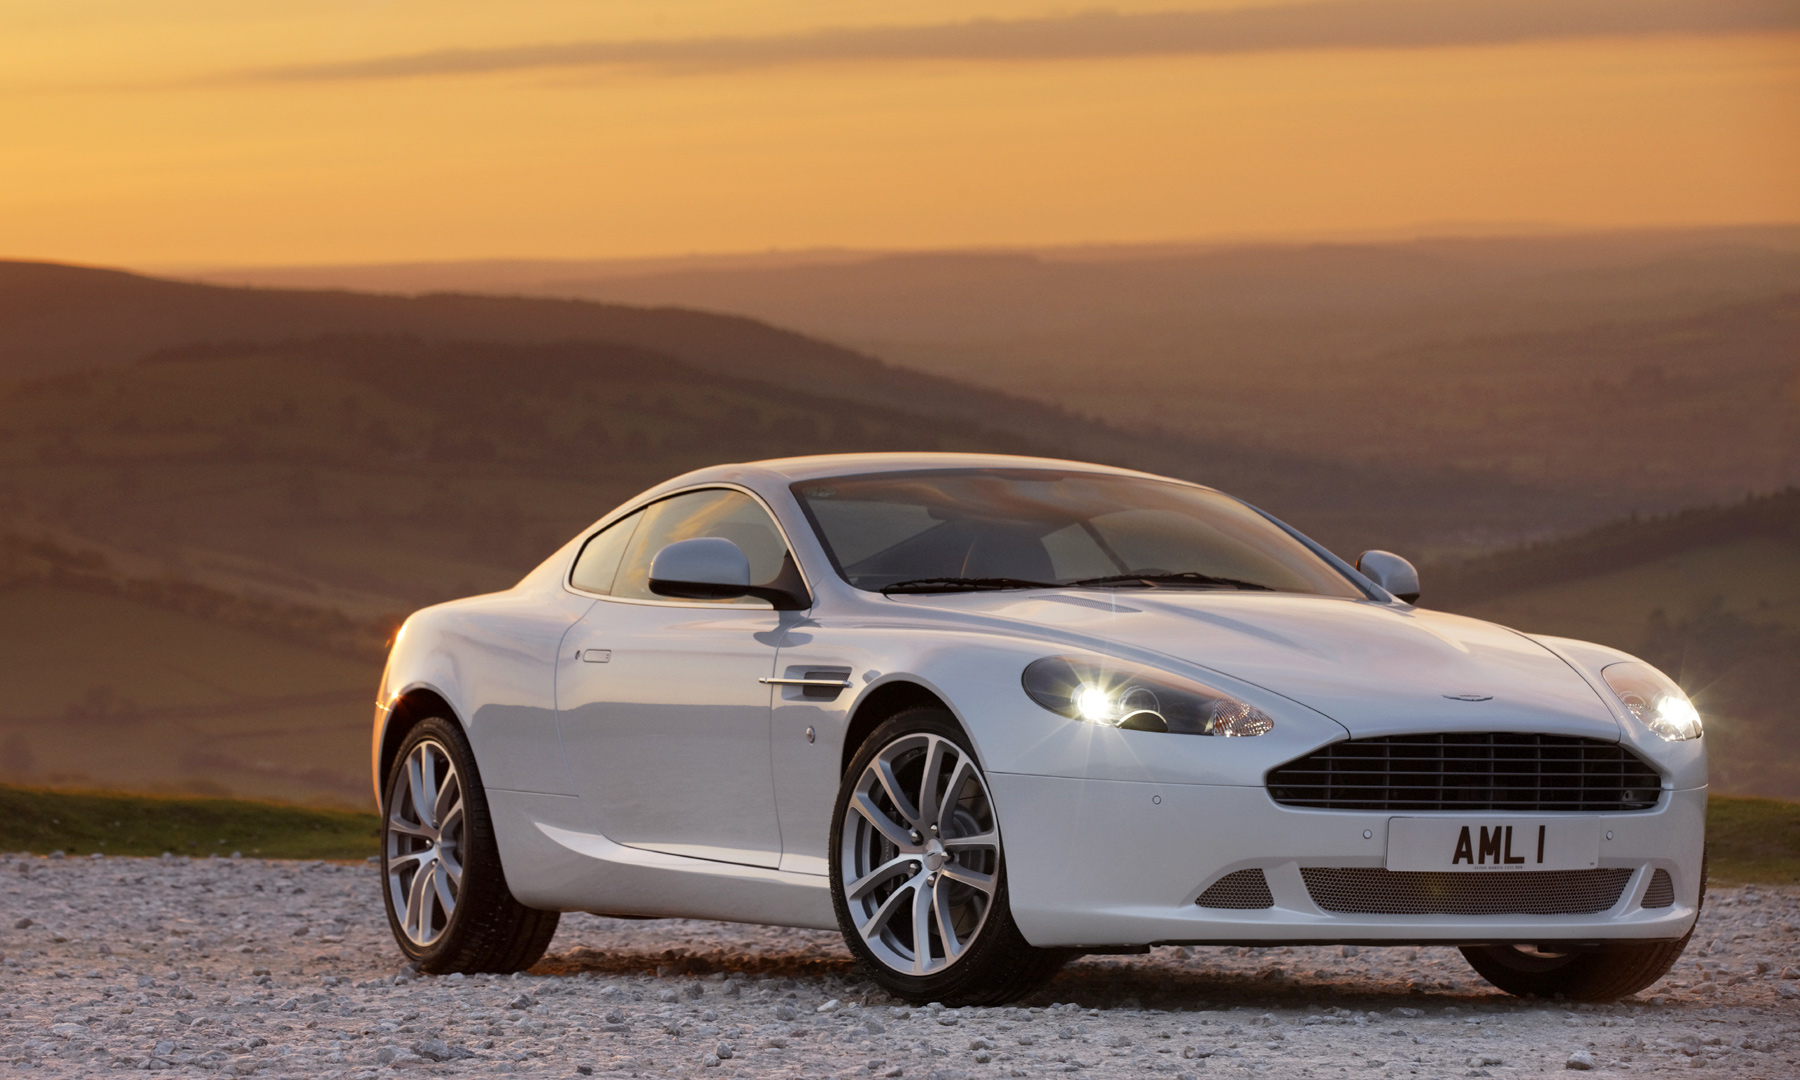 Aston Martin DB International Price Overview - How much is an aston martin db9